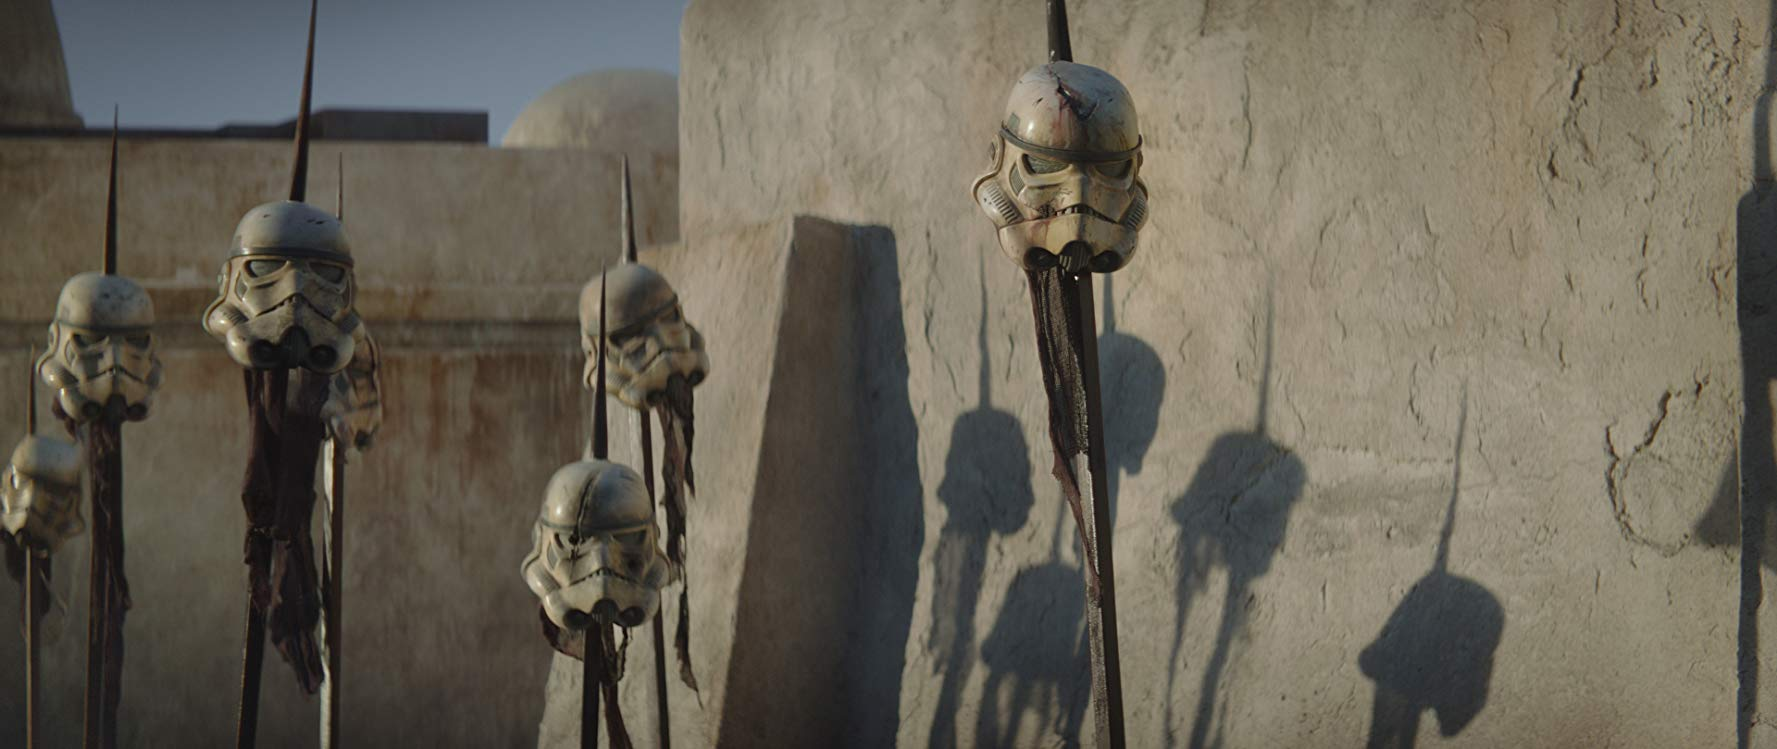 [Episode Recap] THE MANDALORIAN EP 5